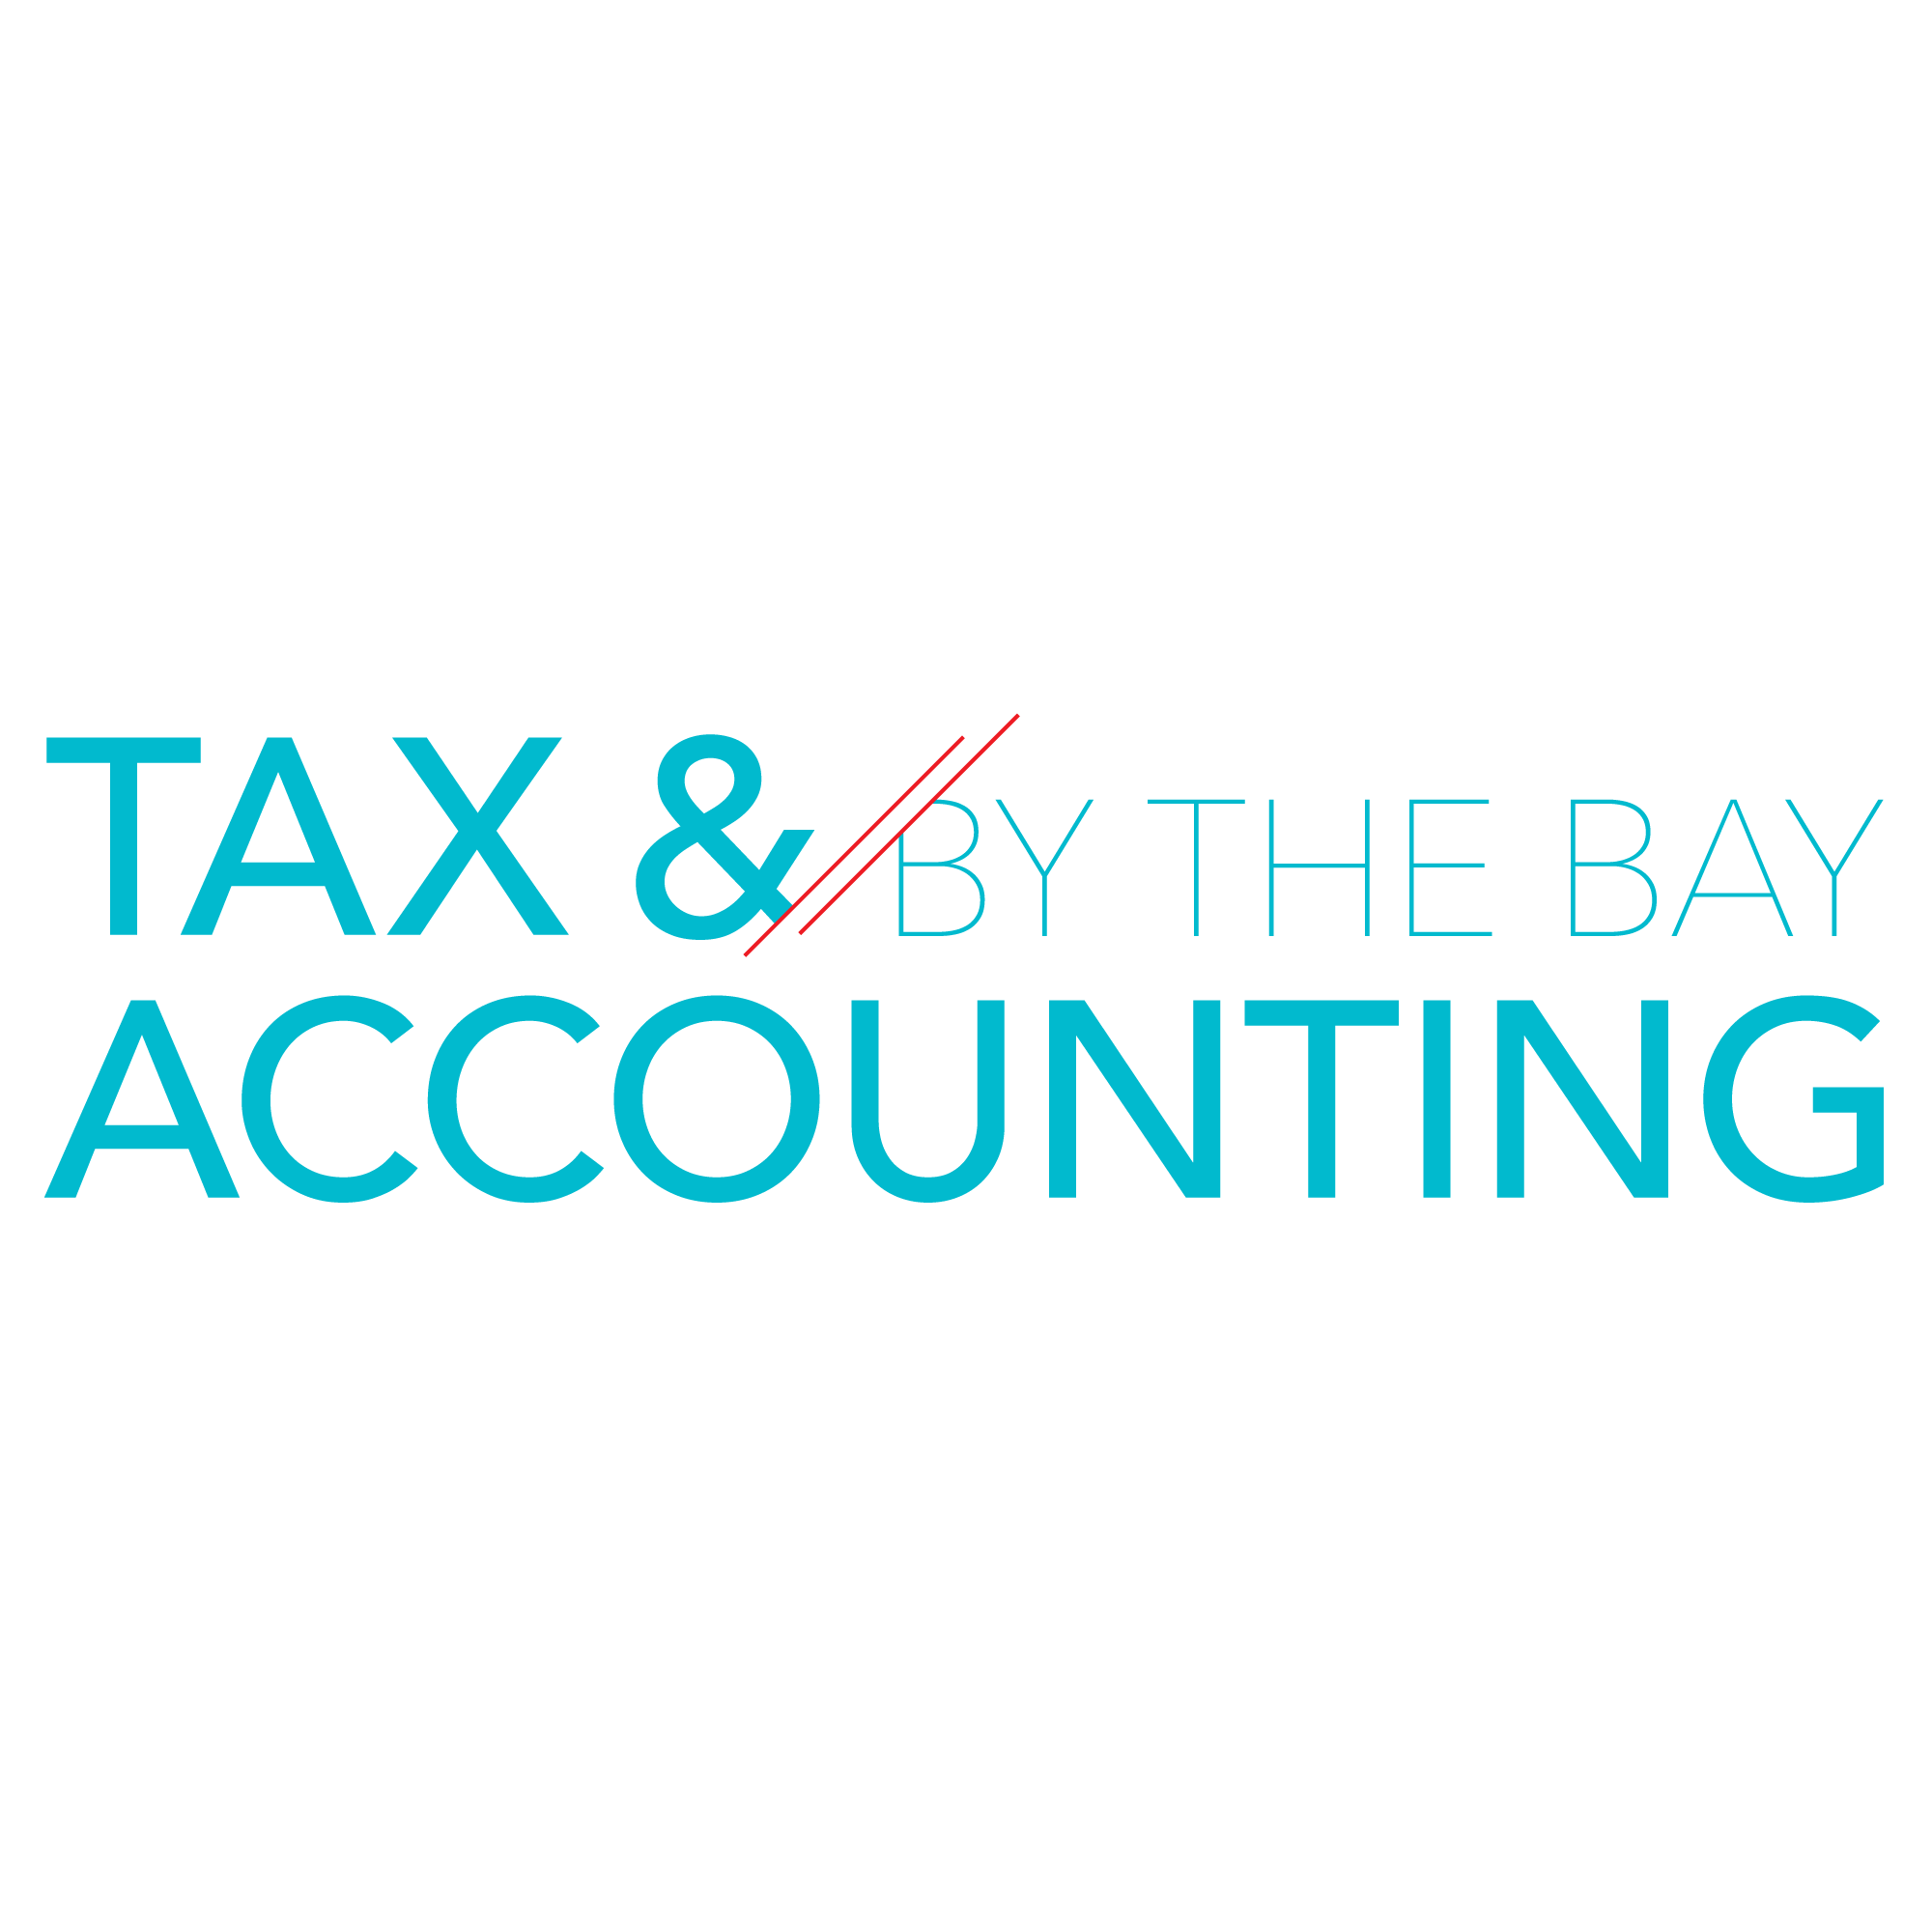 Tax & Accounting By The Bay